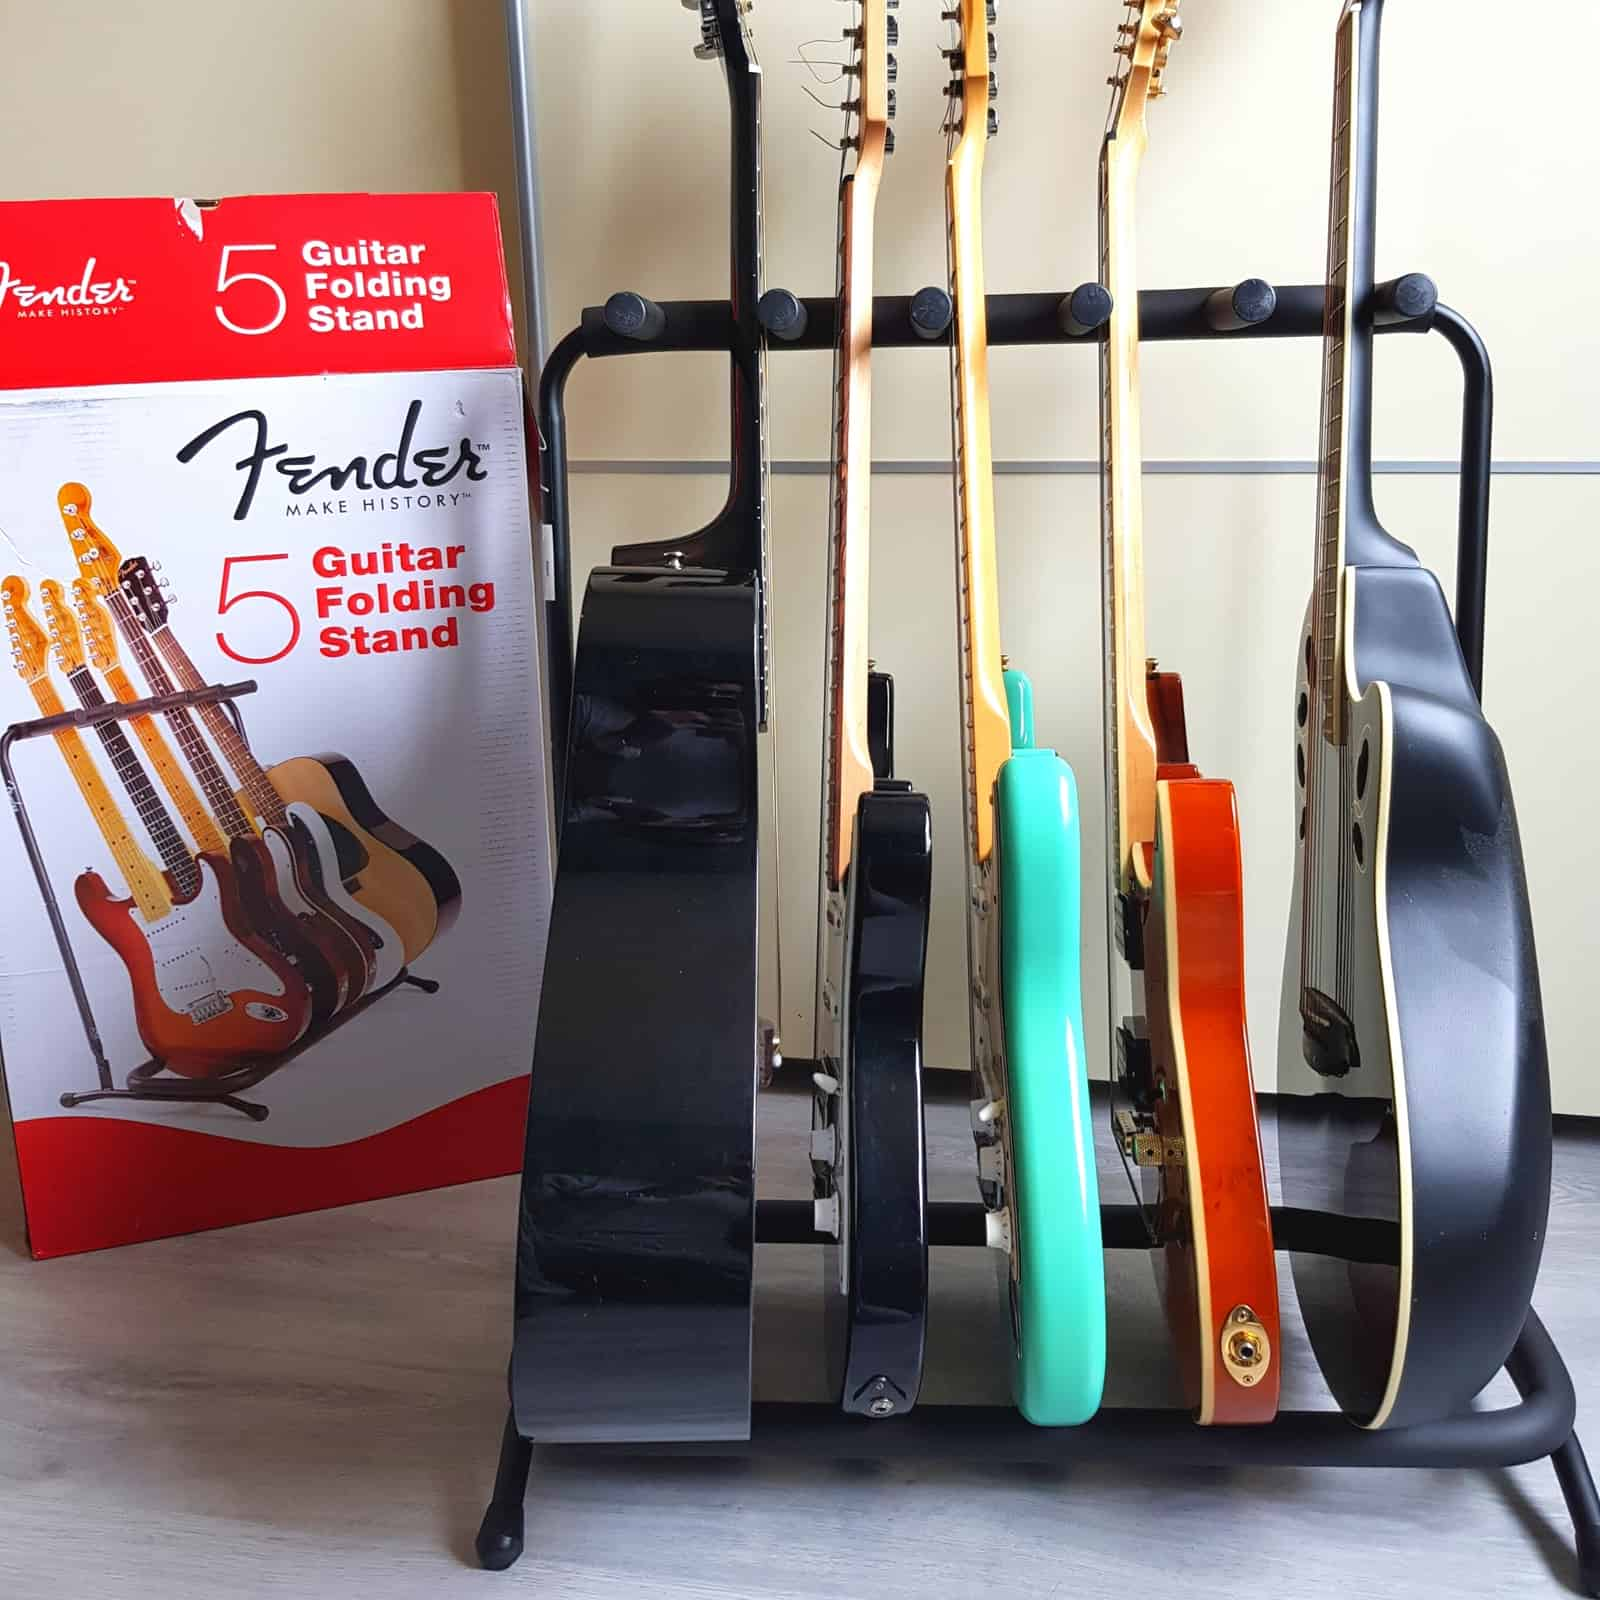 Best budget guitar stand for 5 guitars: Fender 5 Multi-Stand